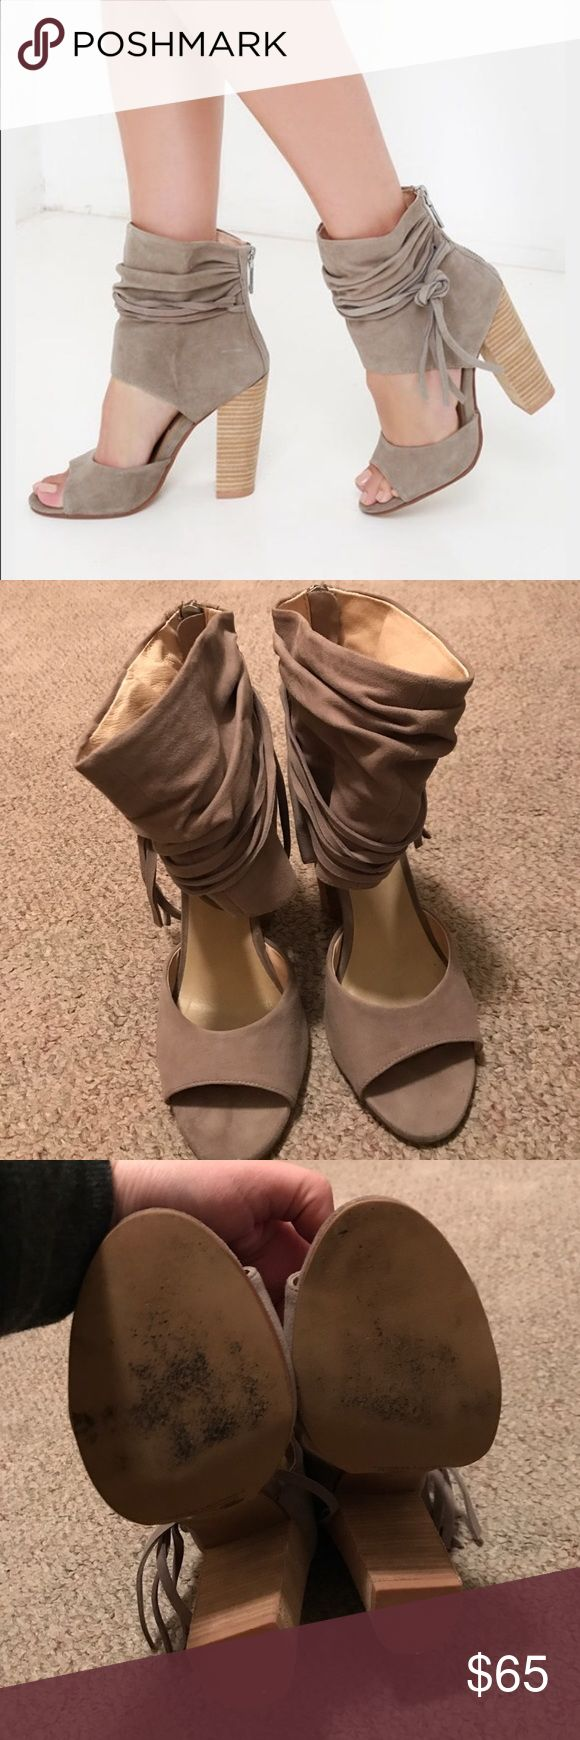 ⚡️ONE HOUR FLASH SALE⚡️RE POSH Kristin Cavallari Kristin Cavallari for Chinese Laundry. I love these heels, but they are slightly too small for me. 😩 feel free to make me an offer! They have a little bit of wear in the toe area. See picture. I'm sure some super glue could fix it. Good condition. Chinese Laundry Shoes Heels